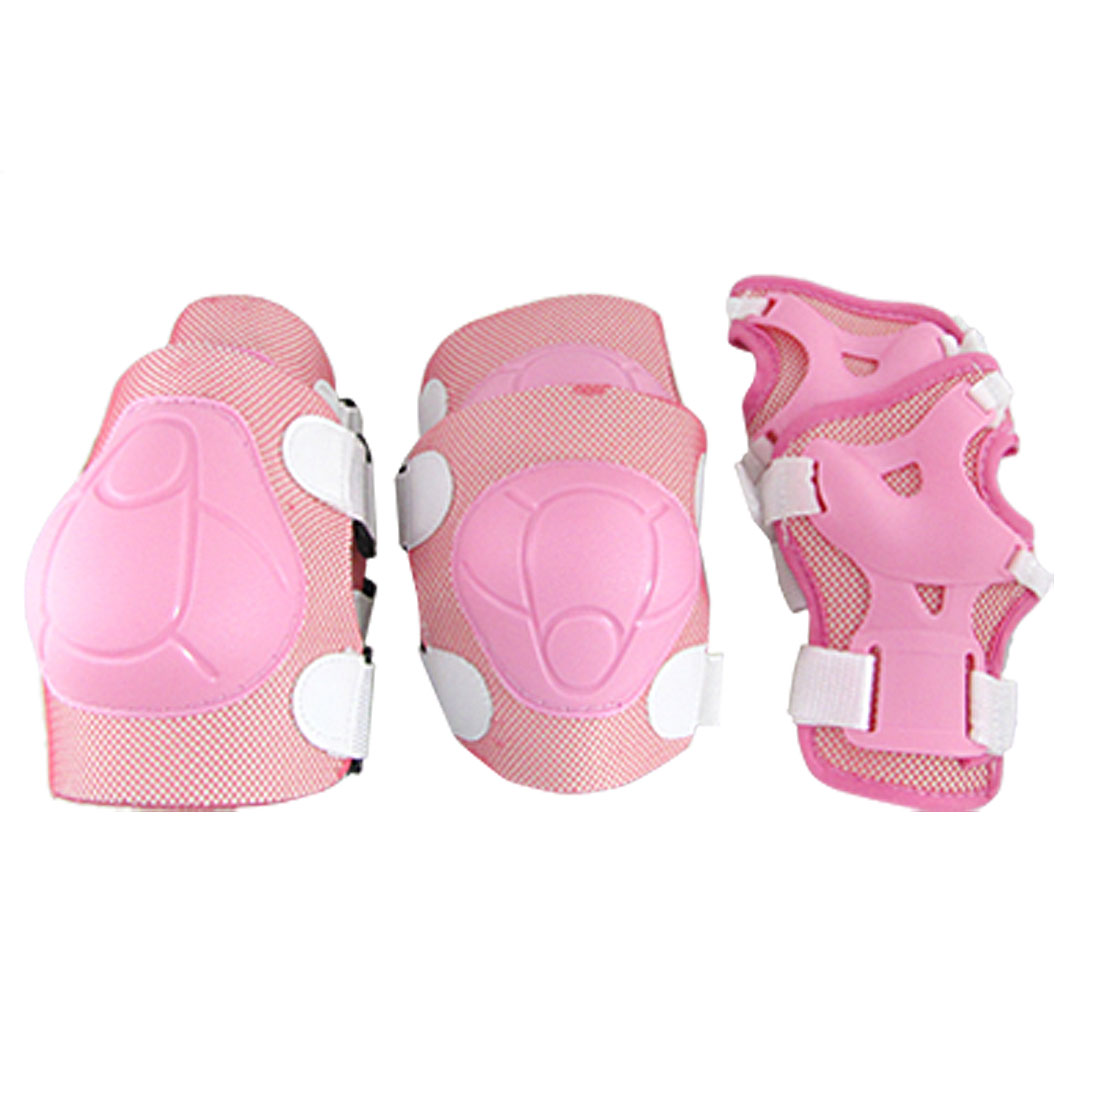 Children Elbow Knee Wrist Support Protector Pink Set